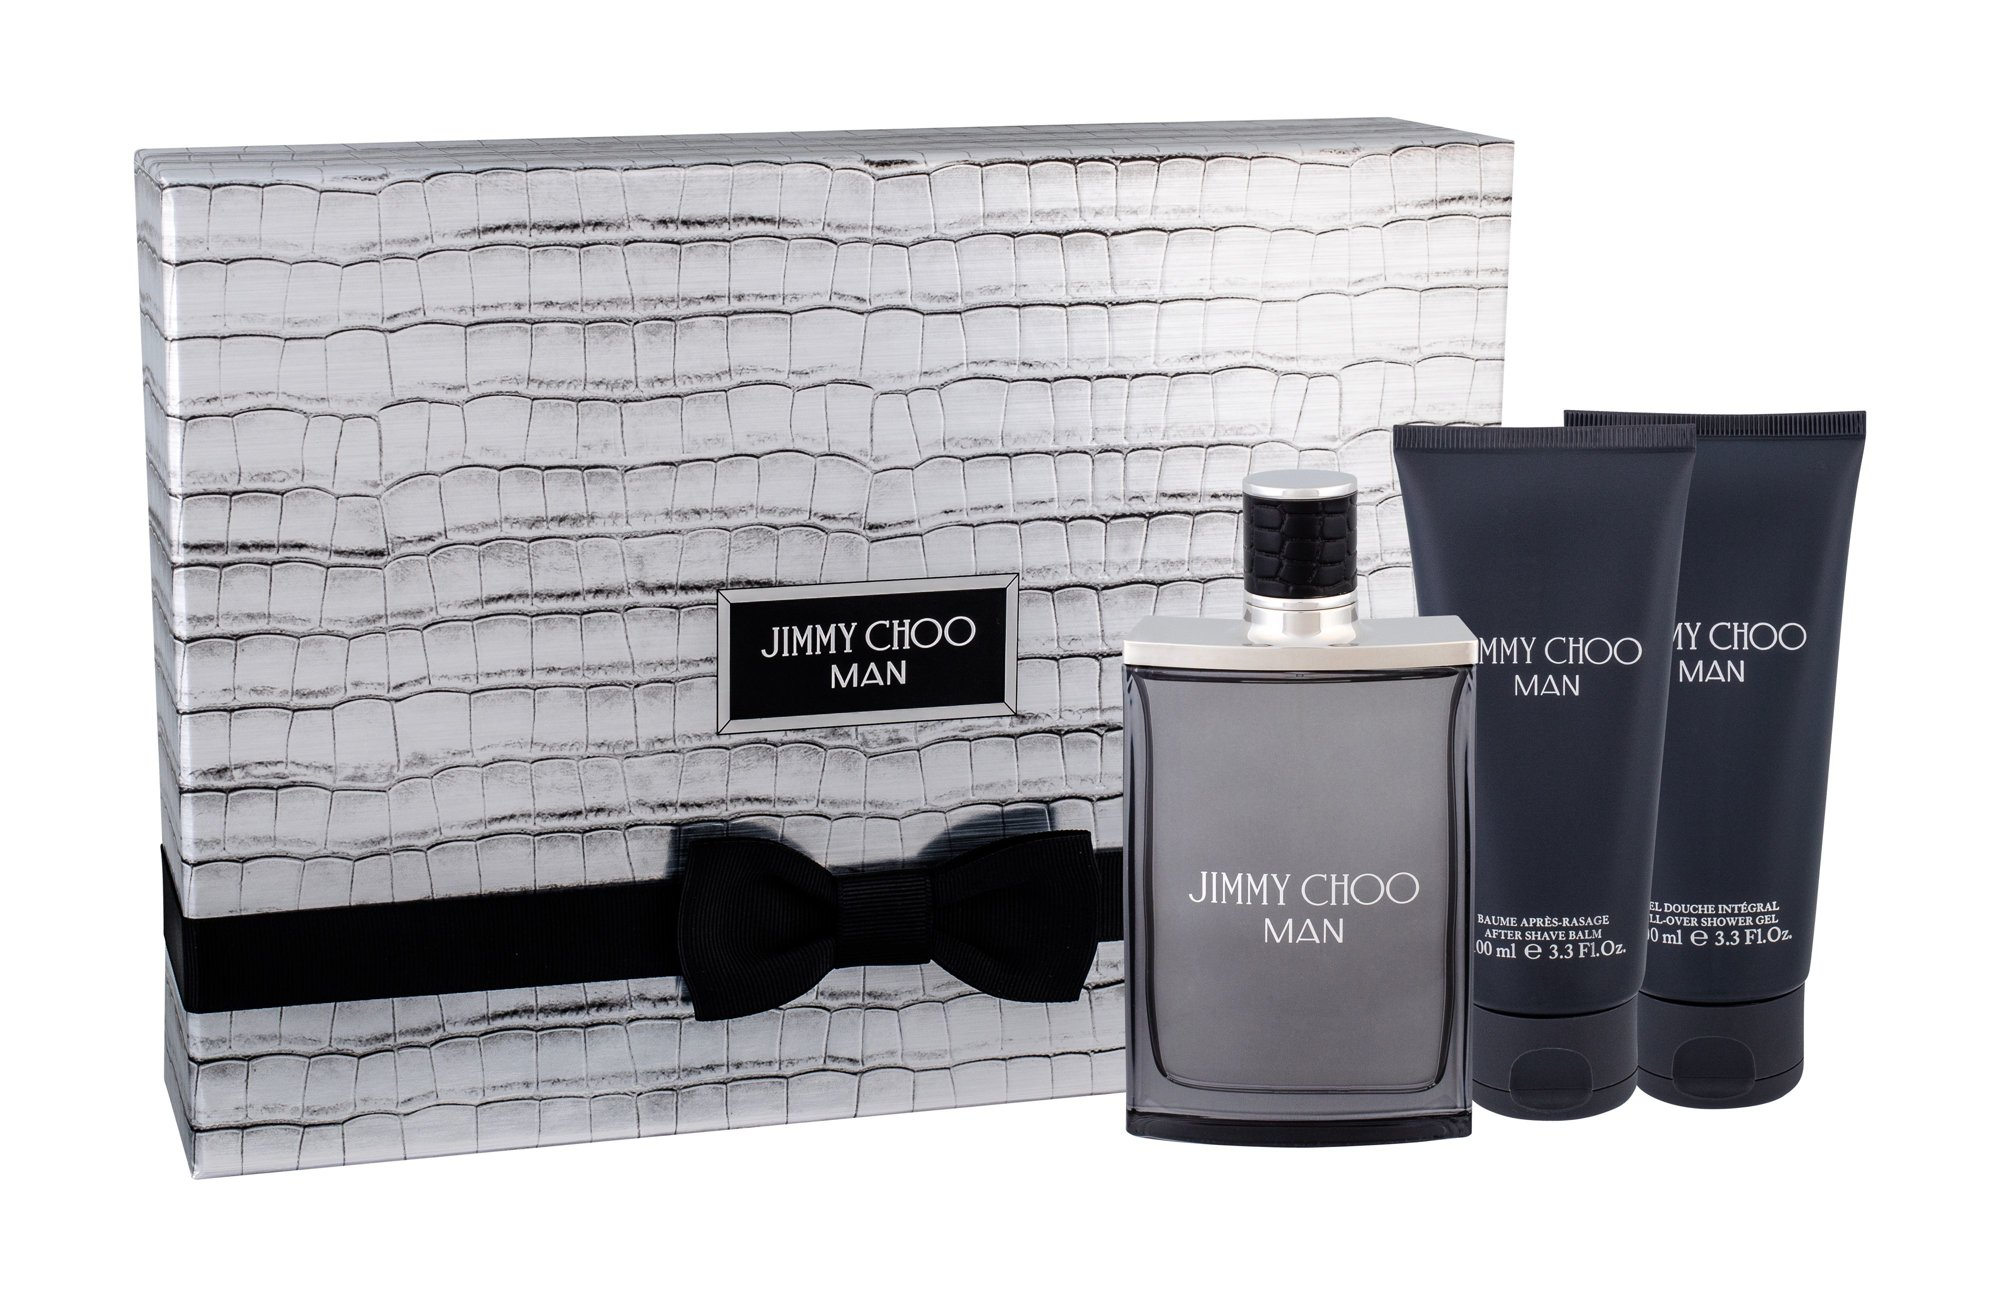 Jimmy Choo Jimmy Choo Man Eau de Toilette 100ml